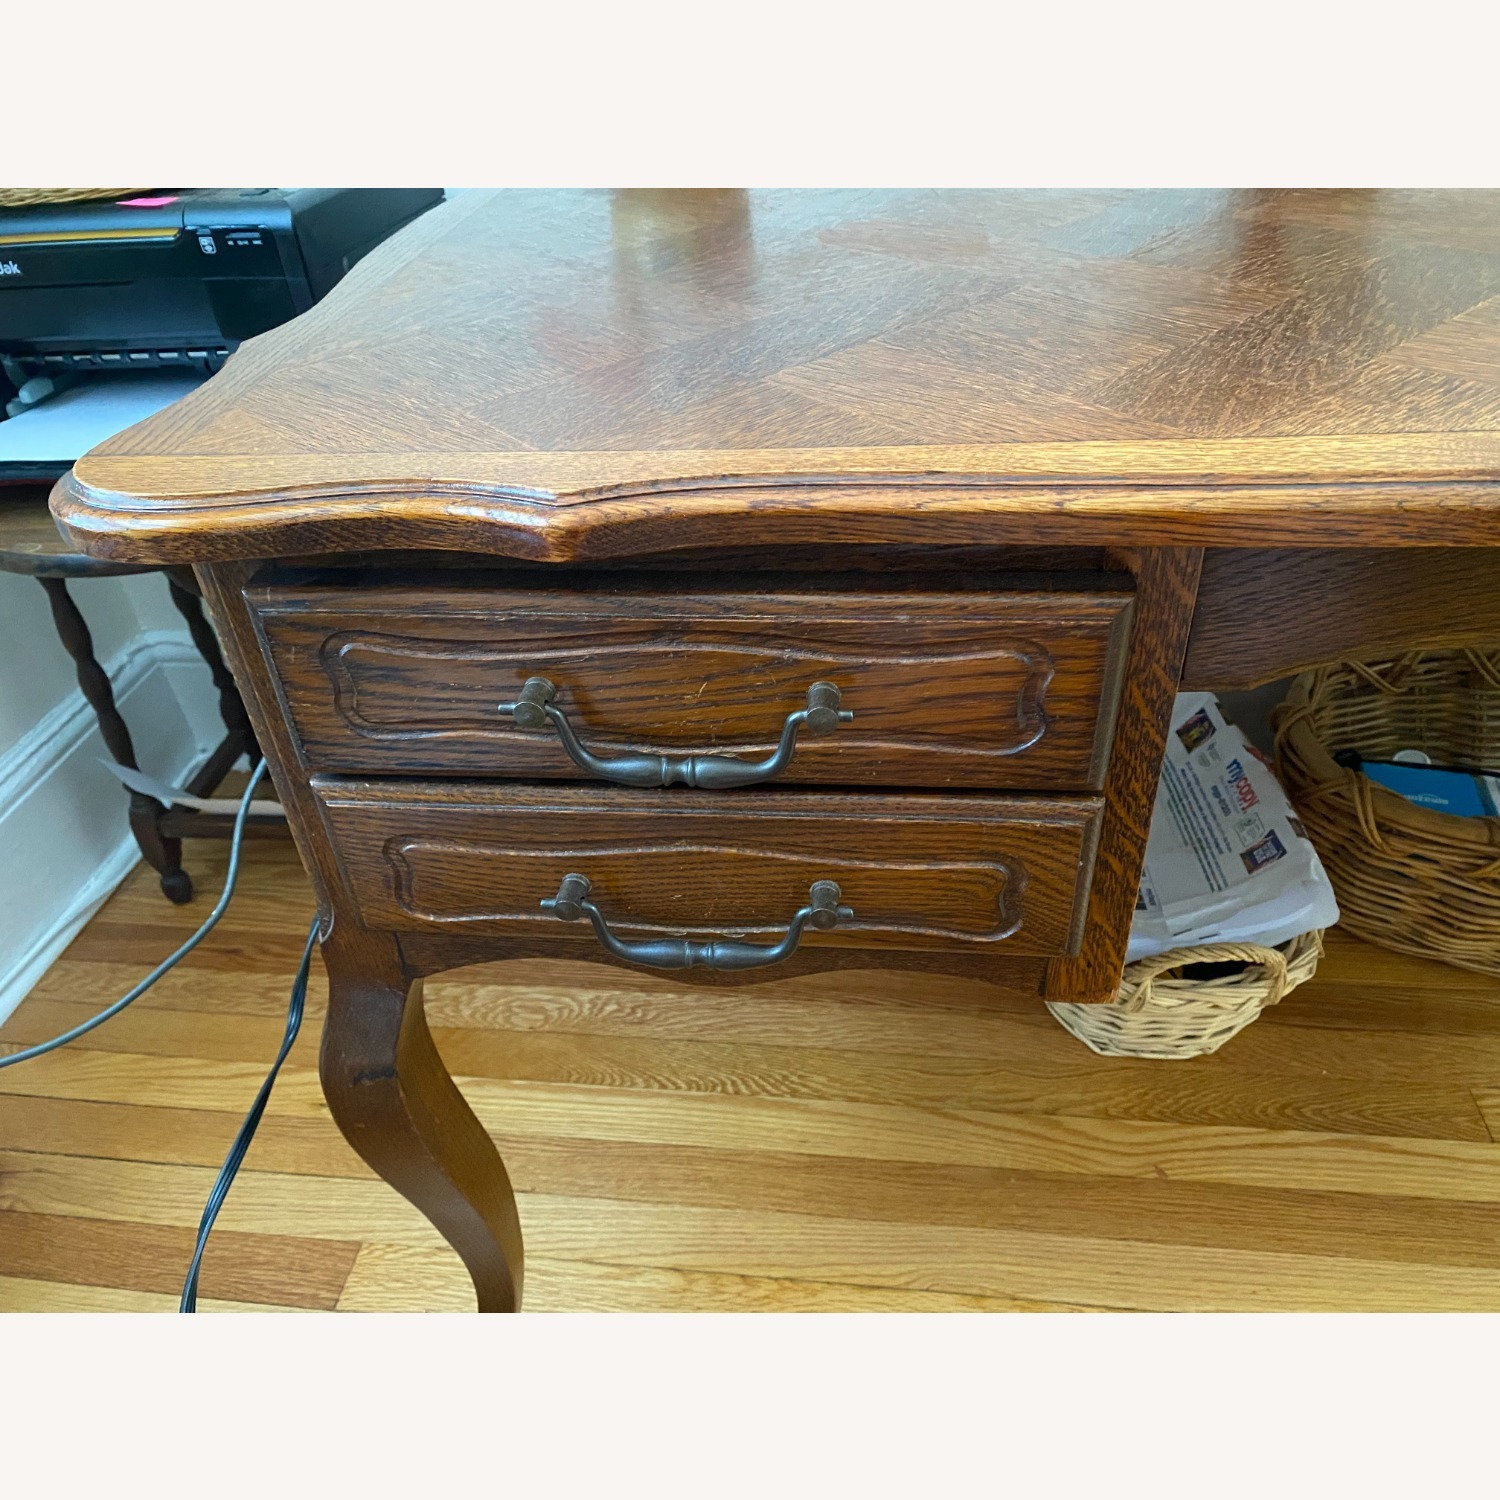 French Provincial Louis XV style Desk Cherry Wood - image-4